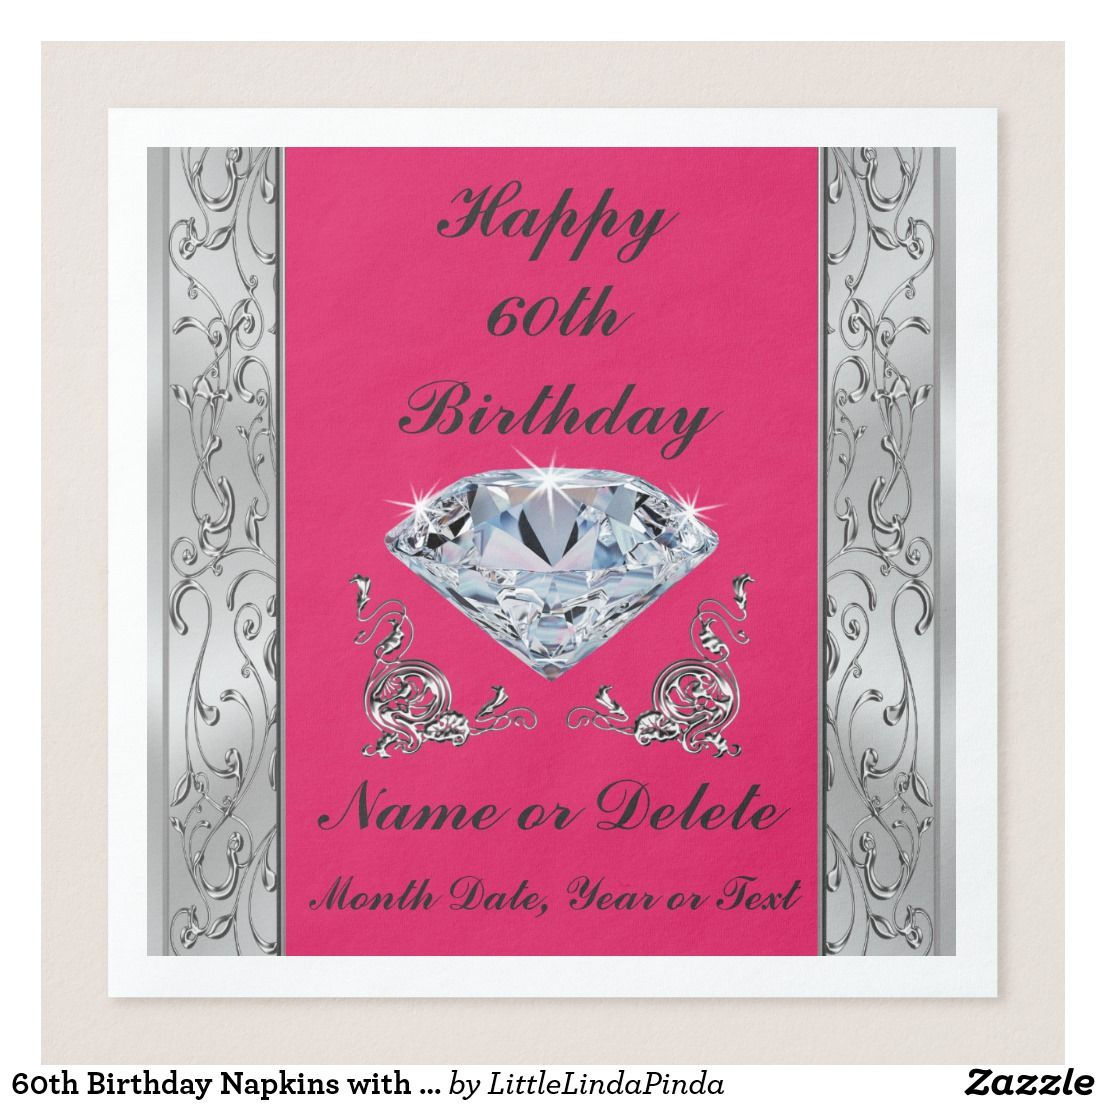 60th birthday napkins with your text and colors zazzle